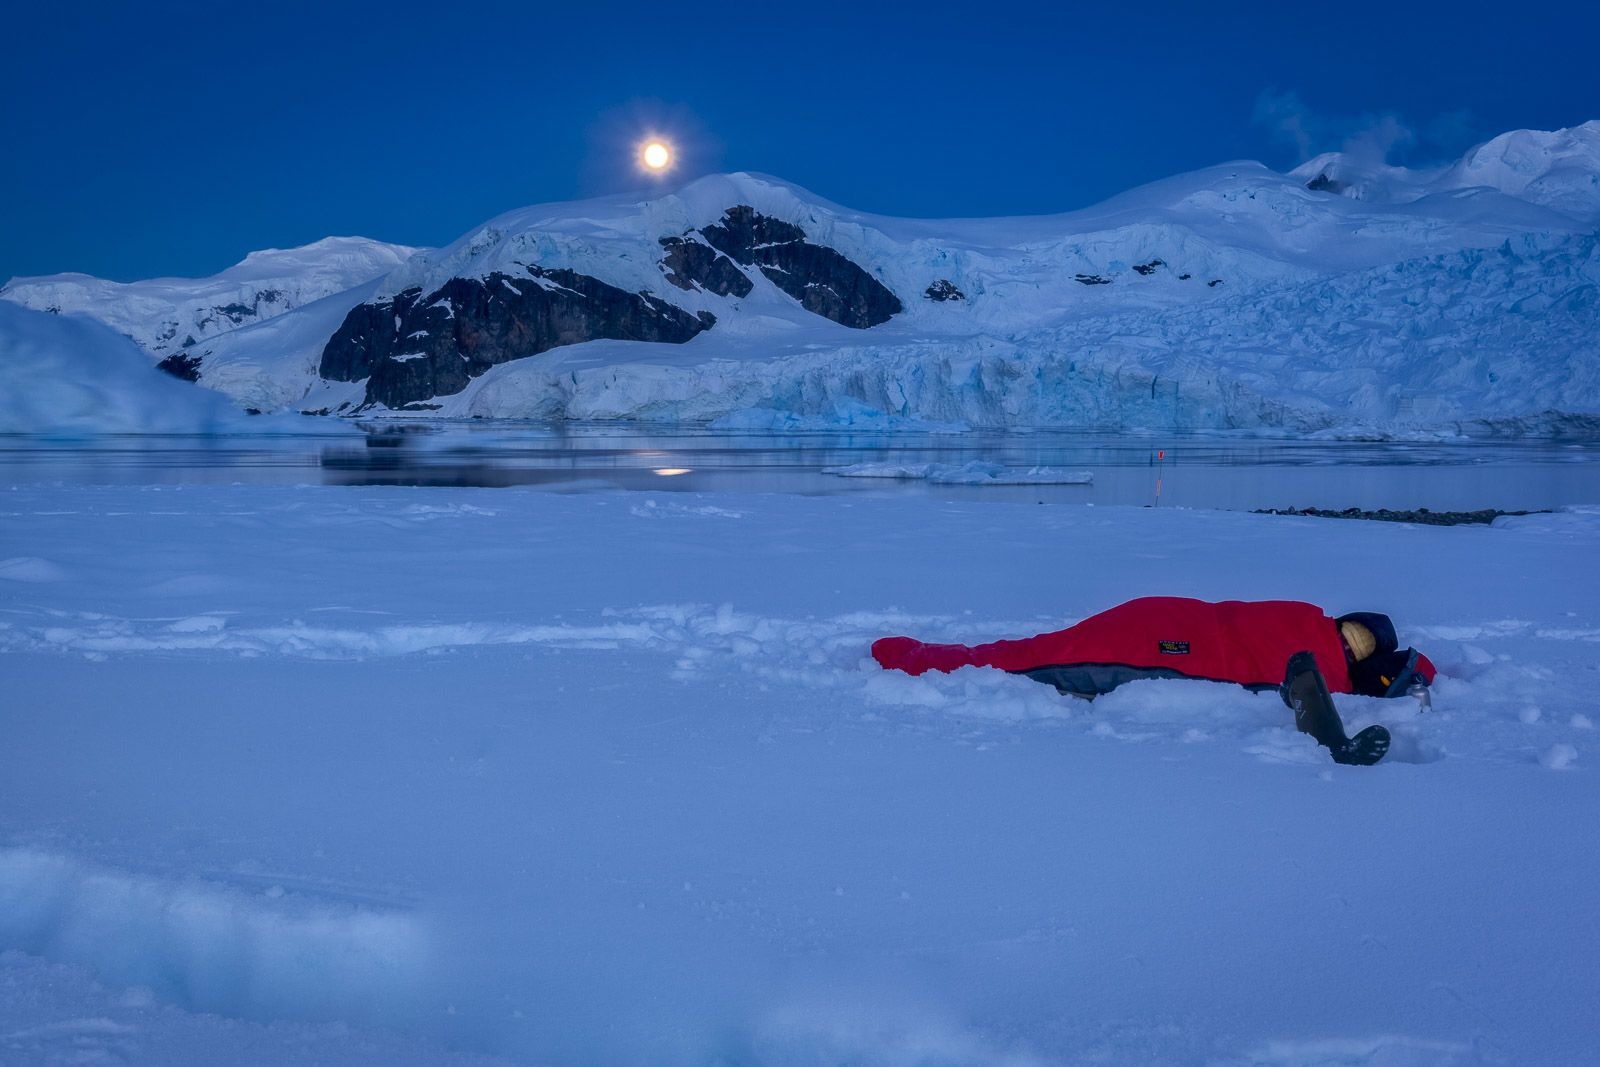 Antarctica can be cold